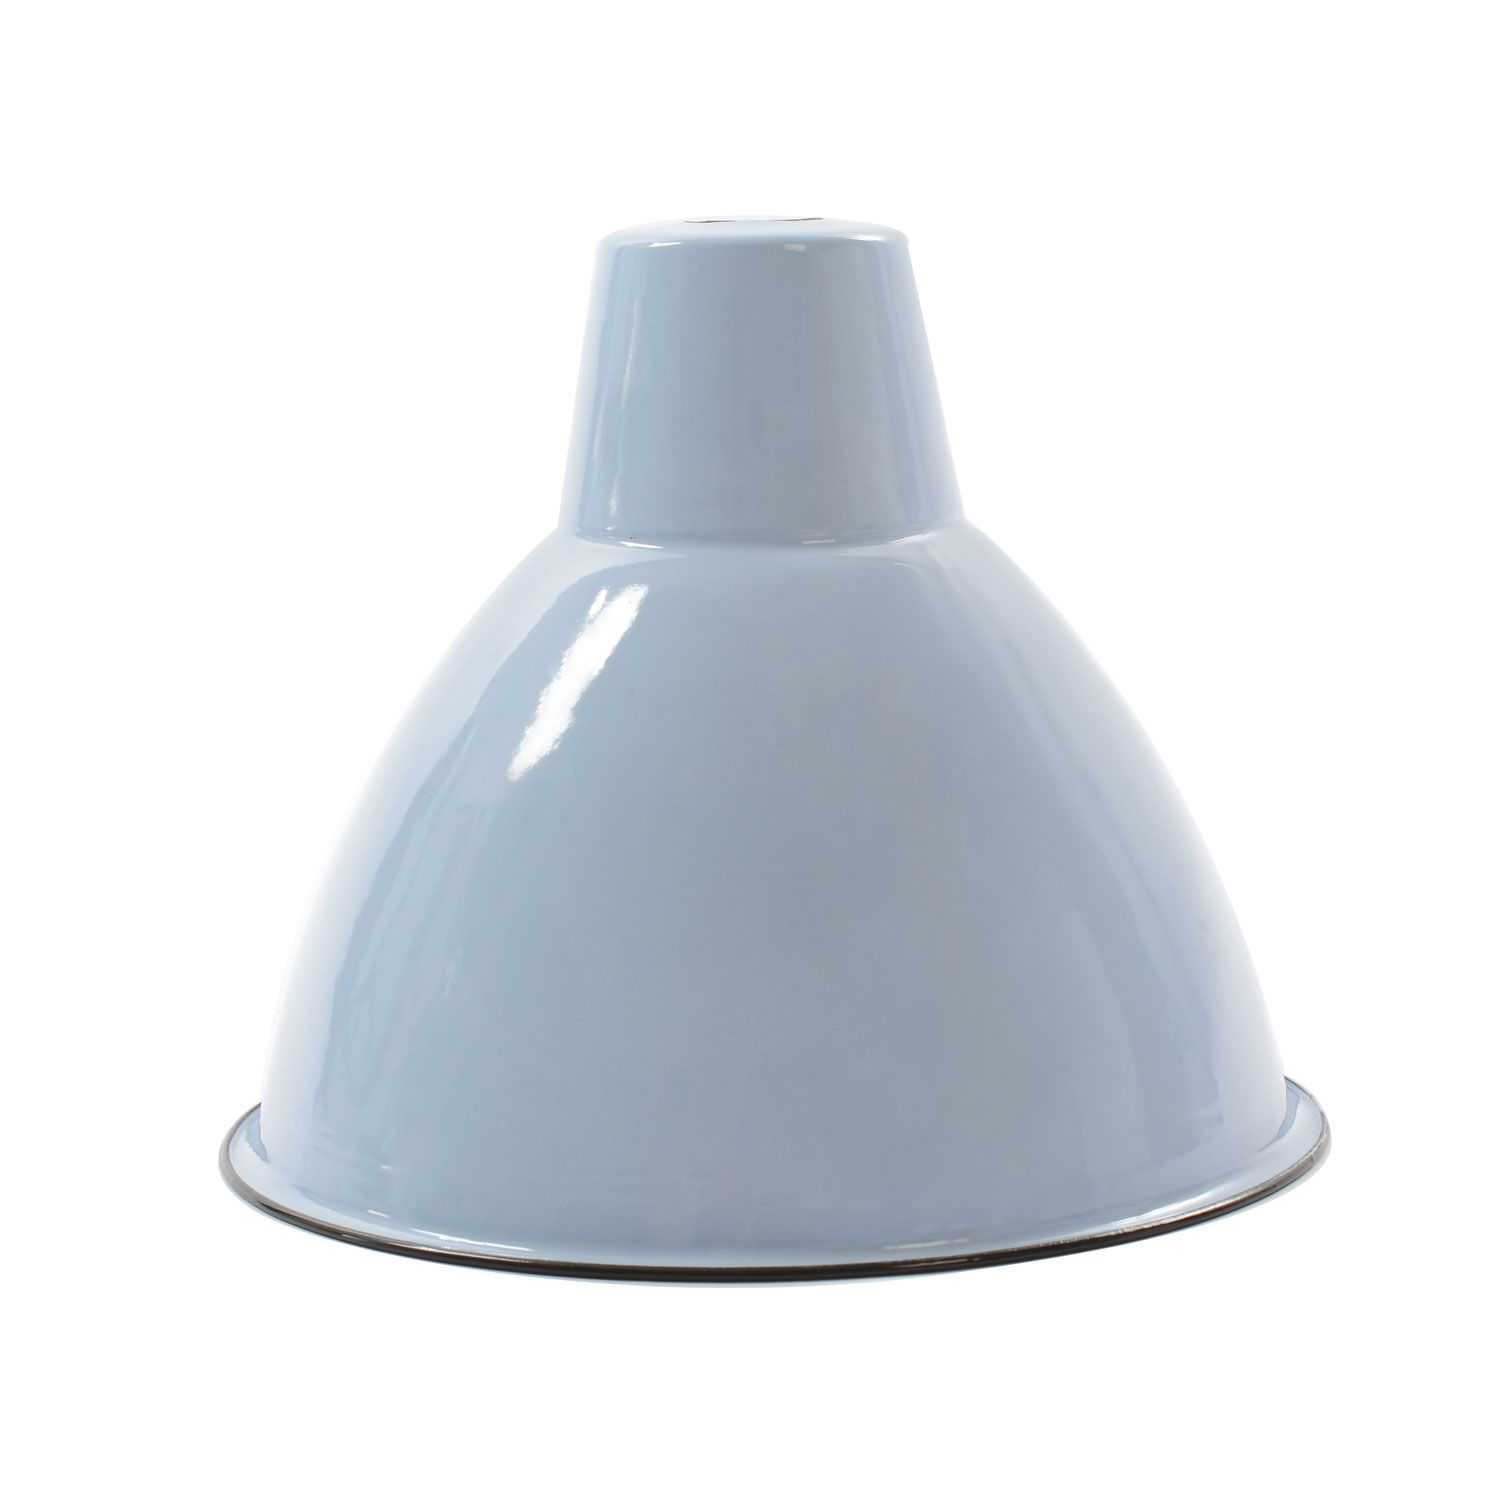 Dyke & Dean Small Blue Dome Enamel Pendant Light Shade